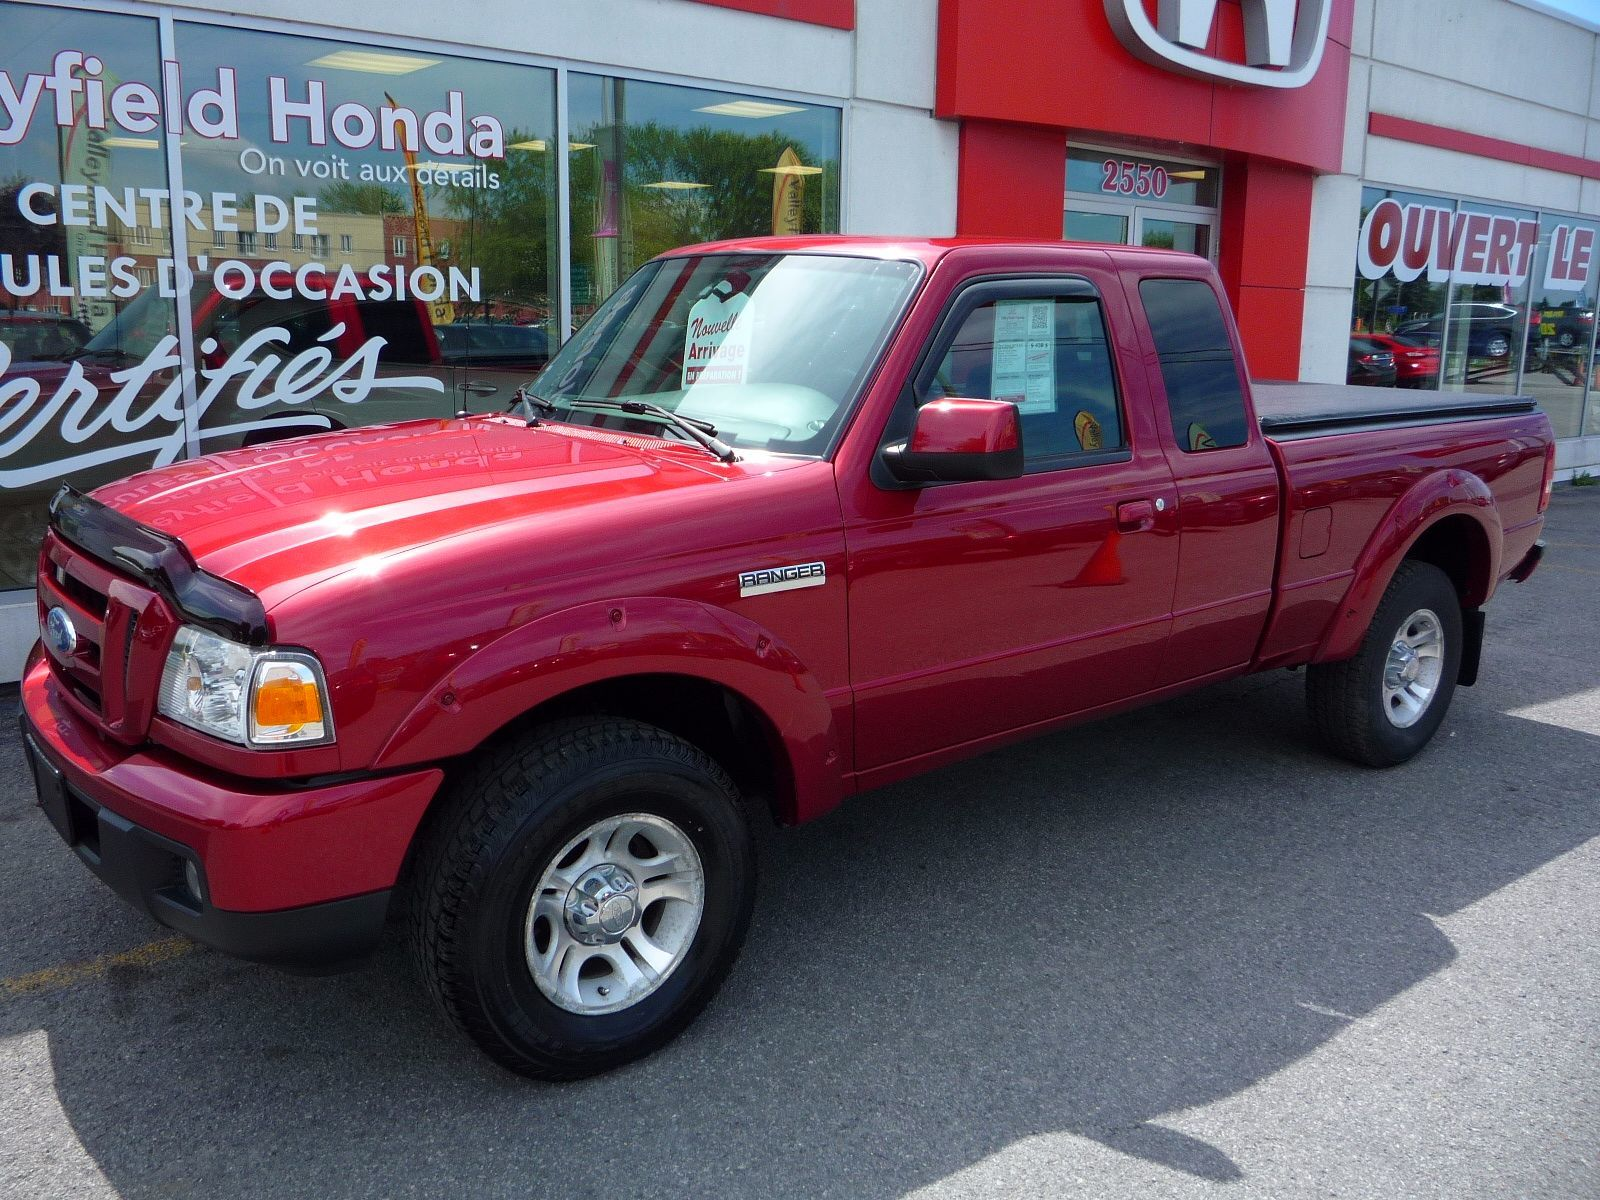 Used 2007 Ford Ranger AUTO A/C V6 MAGS at Valleyfield Honda   $8,995